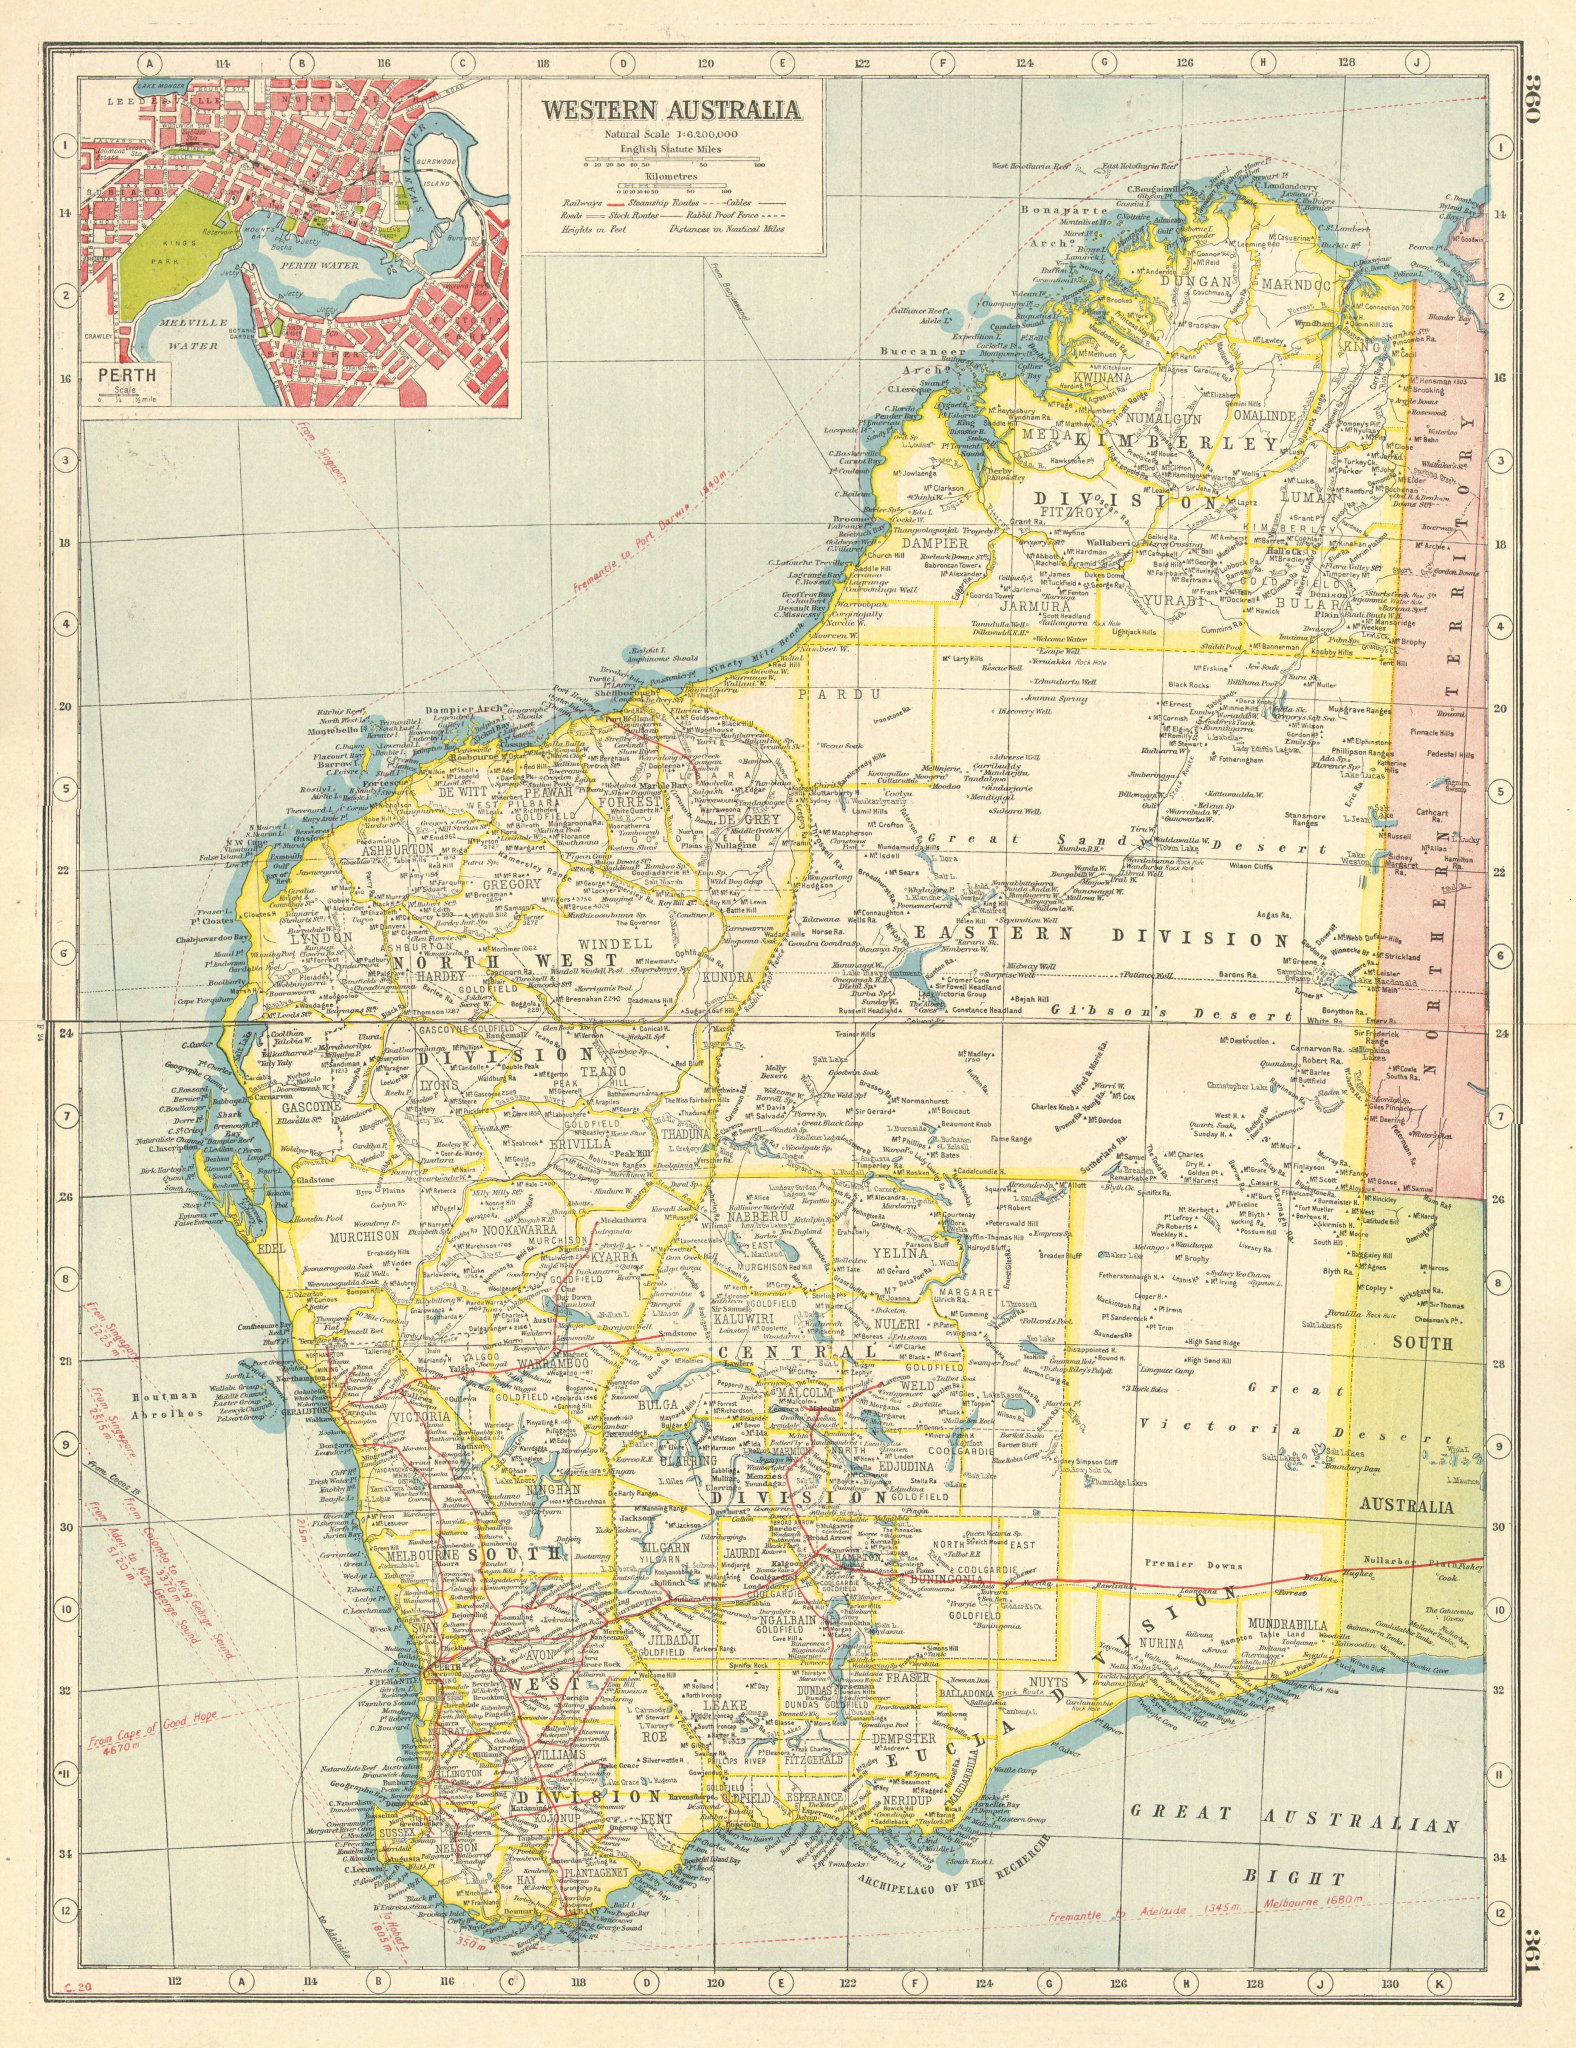 Associate Product WESTERN AUSTRALIA. Inset plan of Perth. HARMSWORTH 1920 old antique map chart